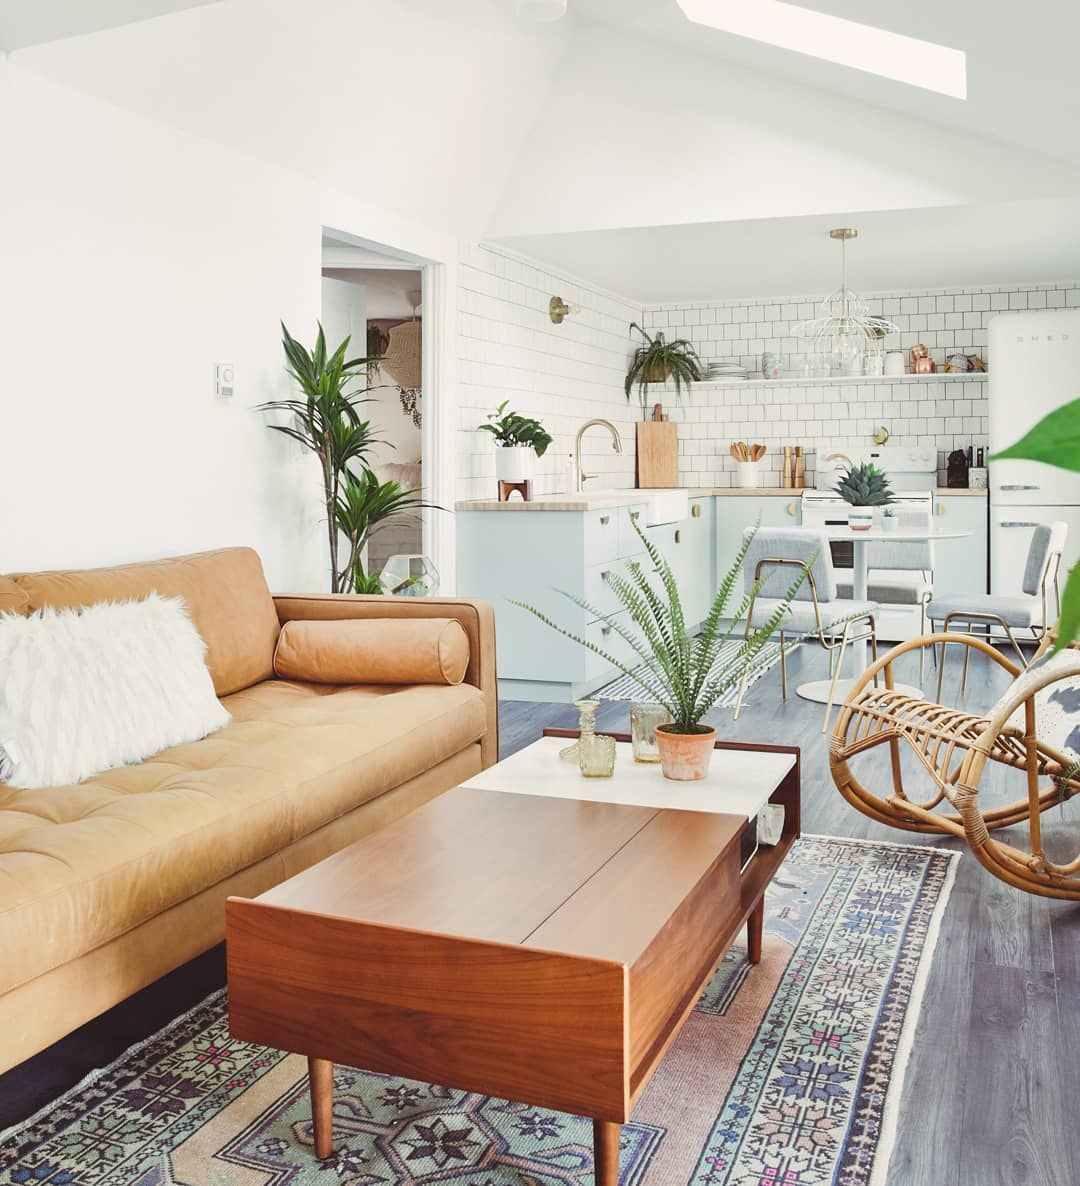 Boho Bungalow On Instagram Officially On Airbnb For Select Dates Book For 3 In 2020 Rugs In Living Room Small Living Room Design Interior Design Living Room Modern